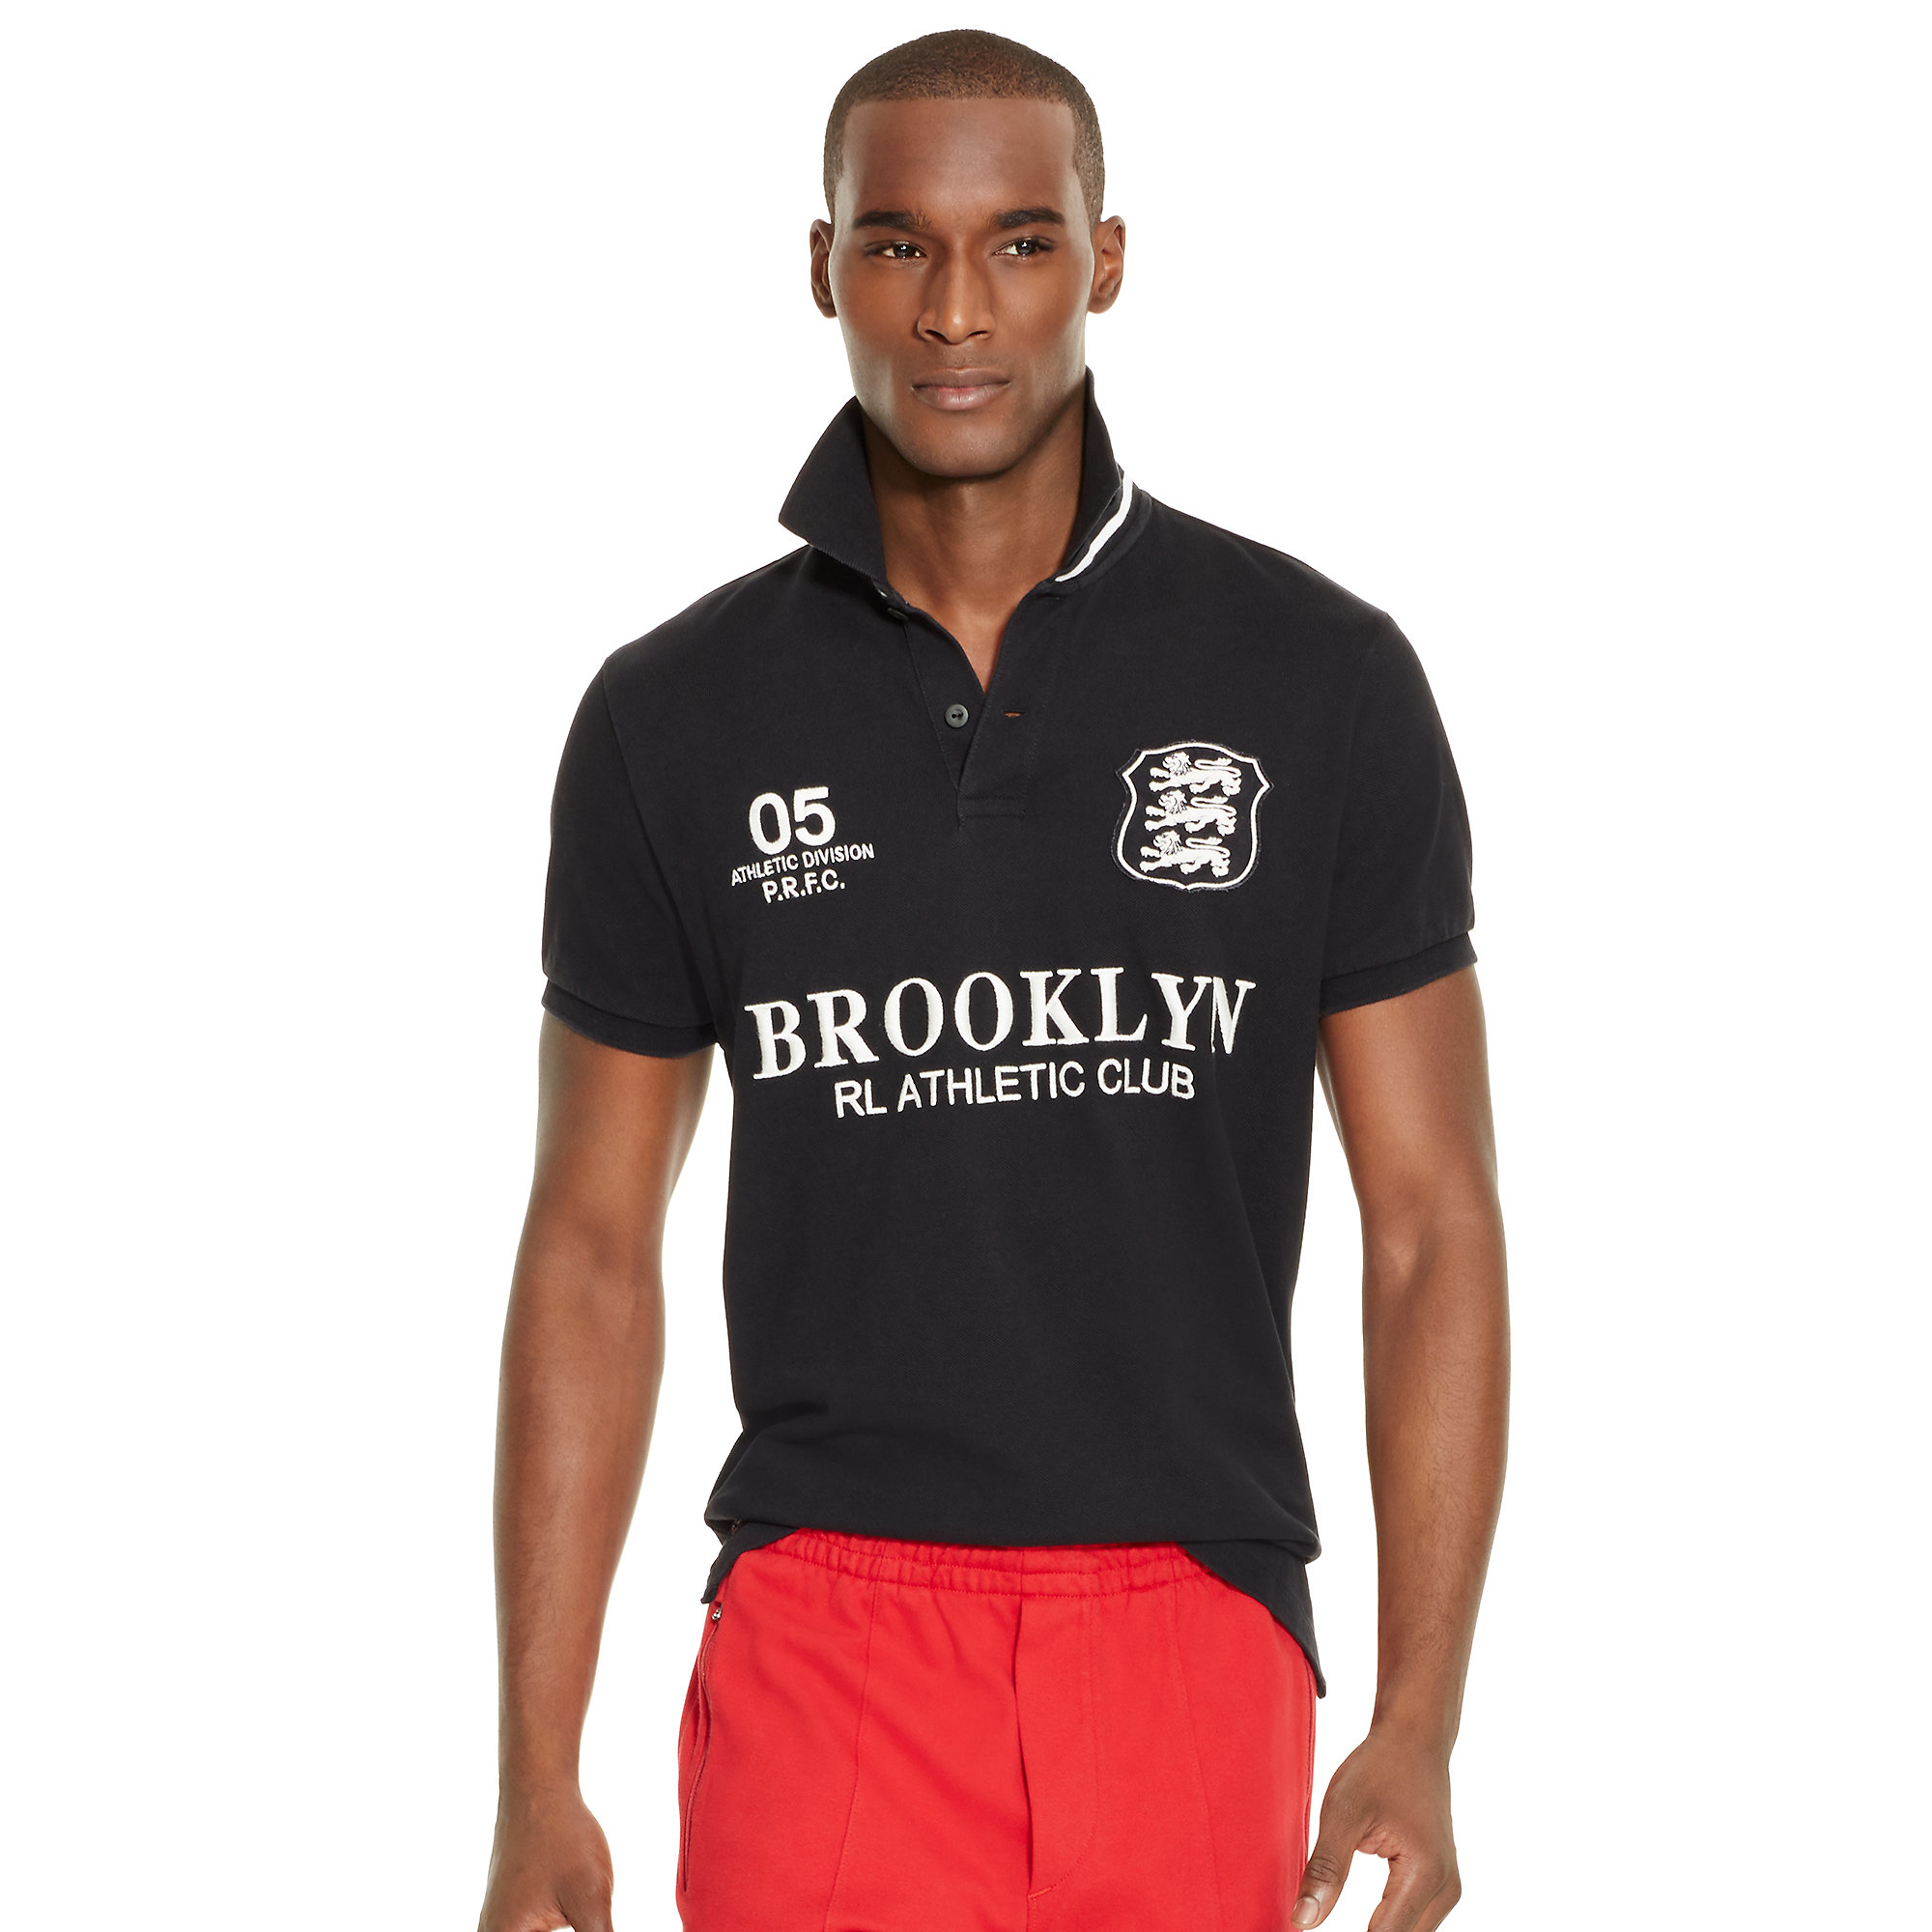 Lyst polo ralph lauren custom fit brooklyn polo shirt in for Man in polo shirt